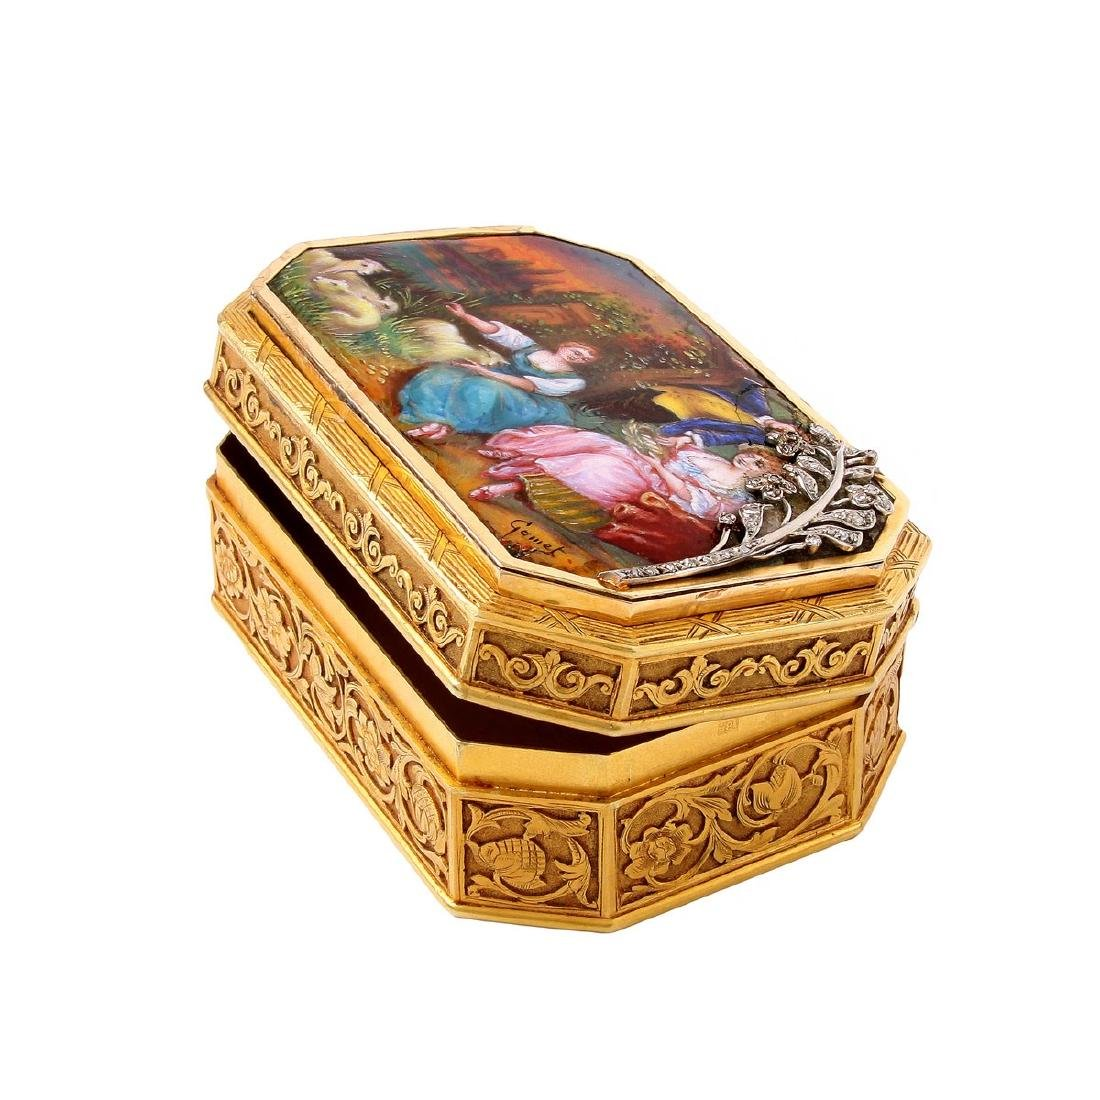 19th Century Continental Gold and Enamel Snuff Box